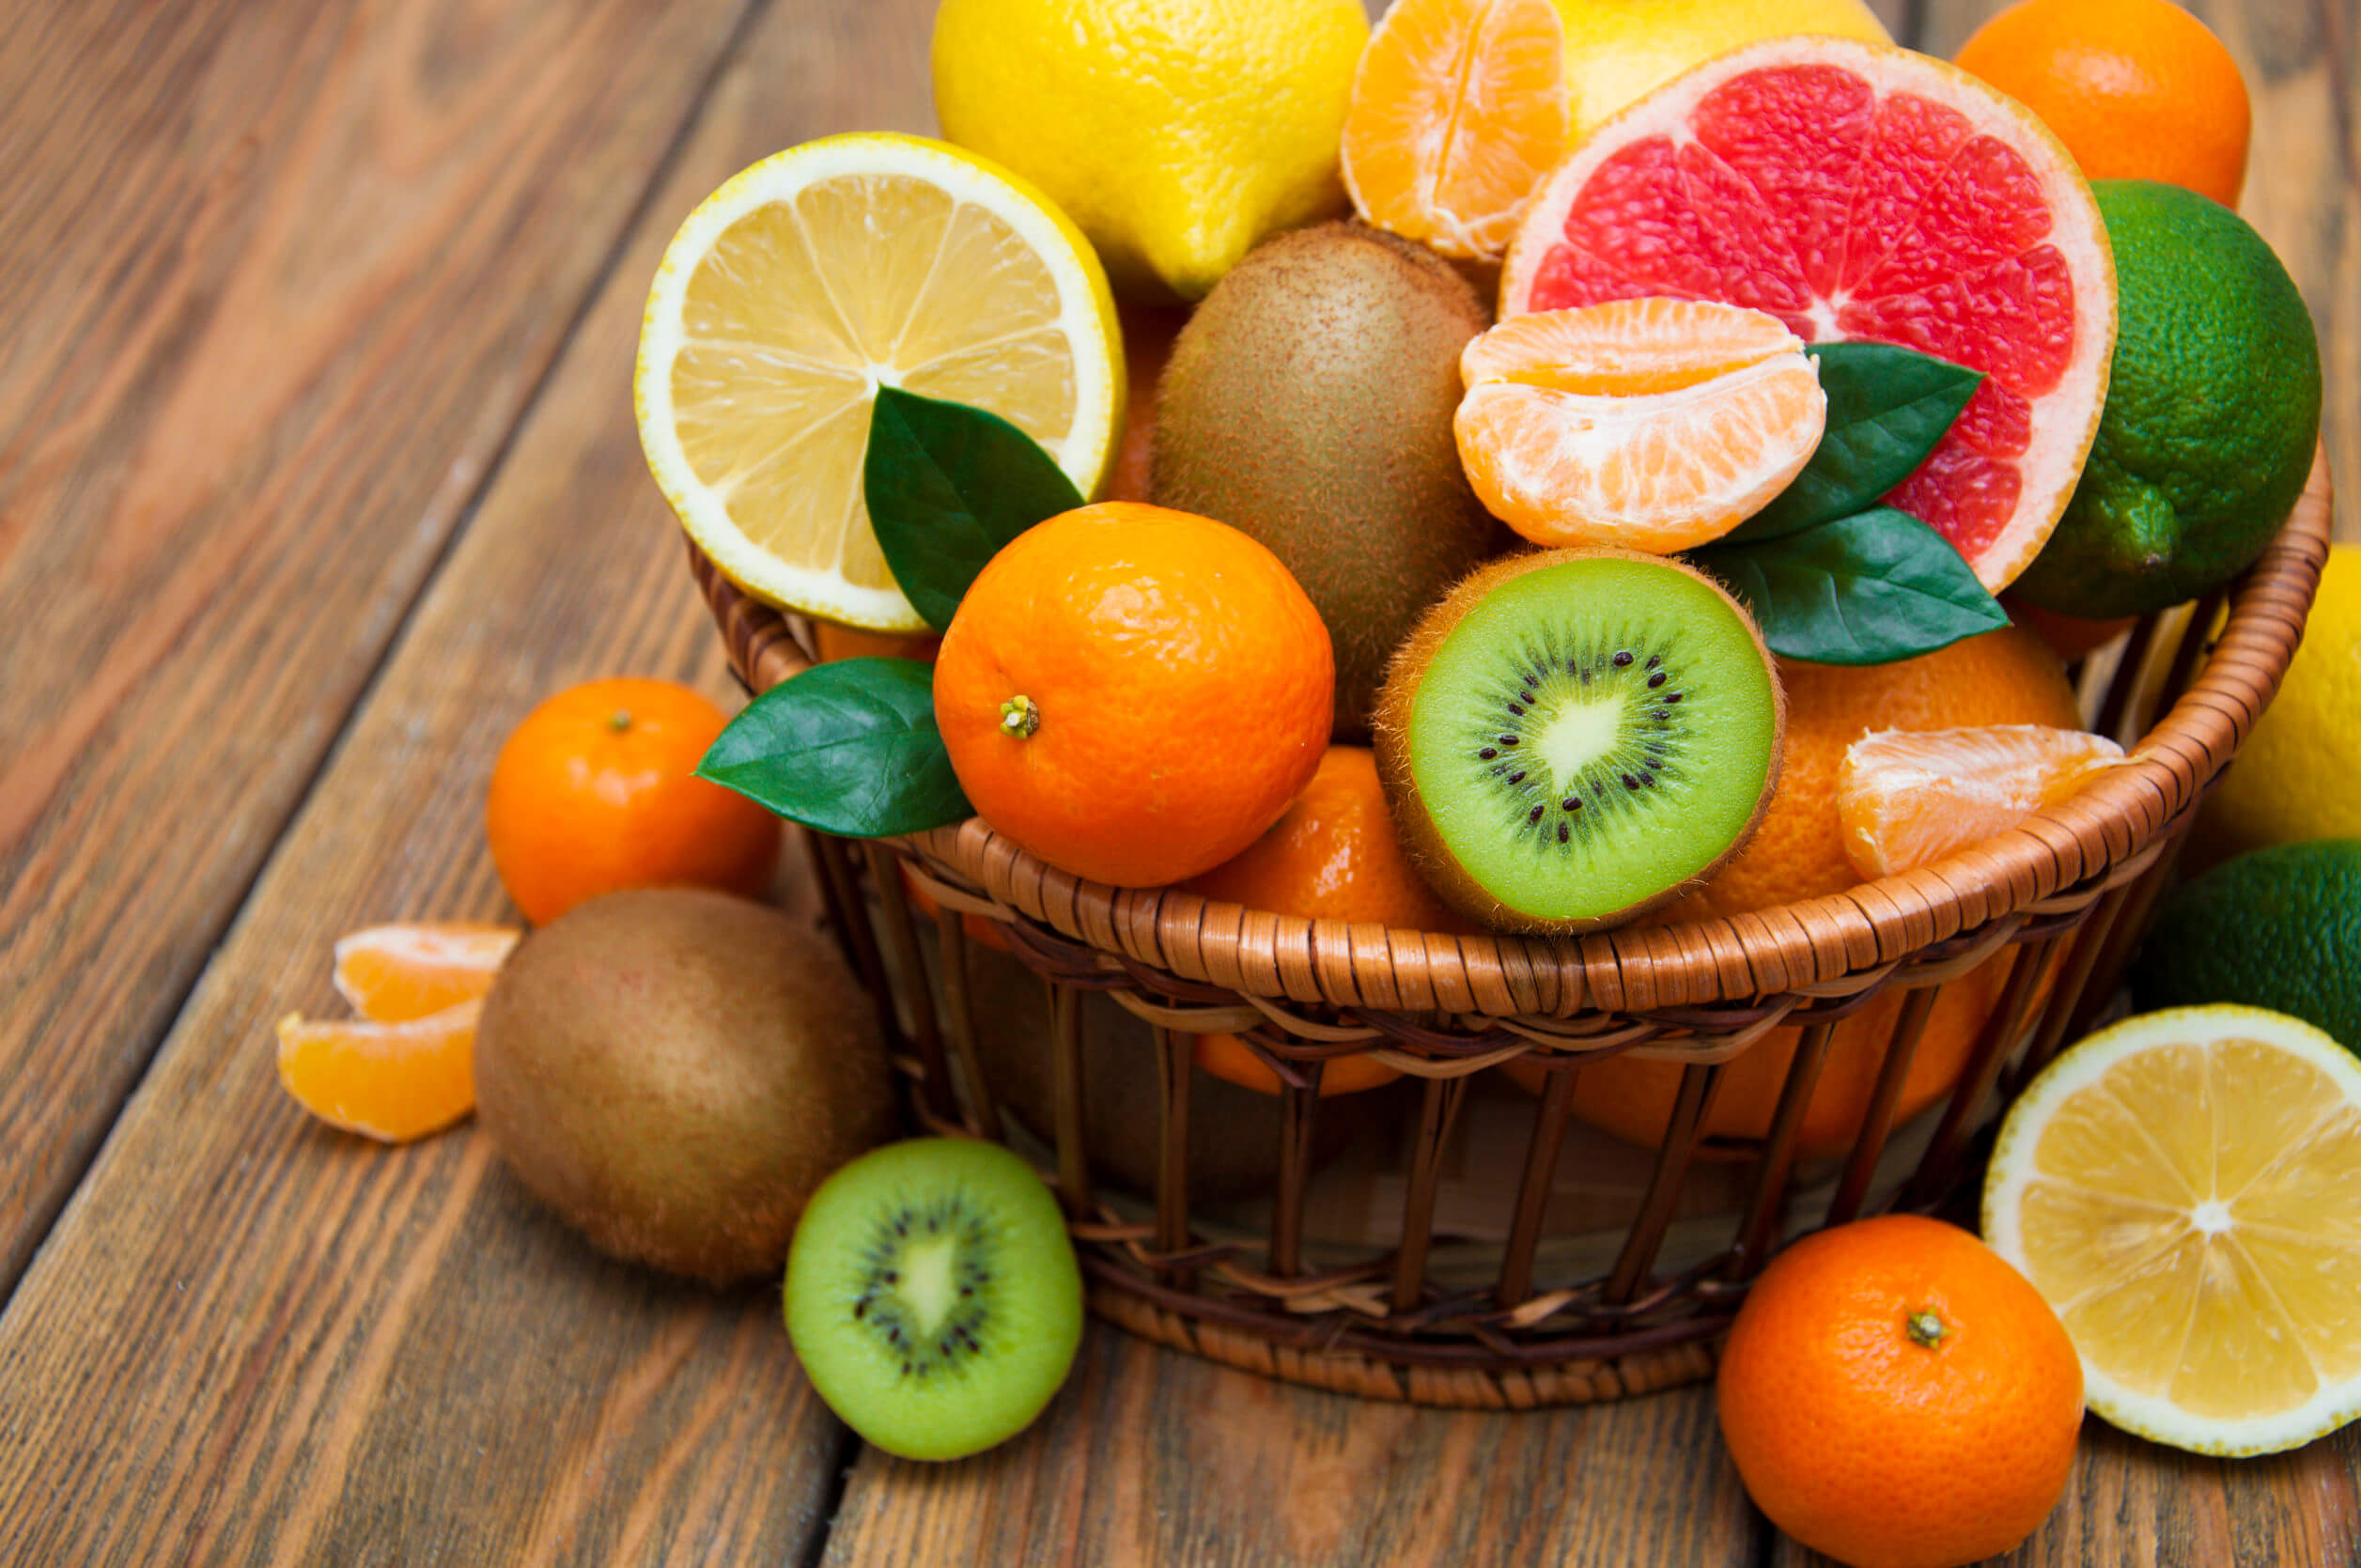 52315233 – fresh juicy citrus fruits in a basket on a wooden background